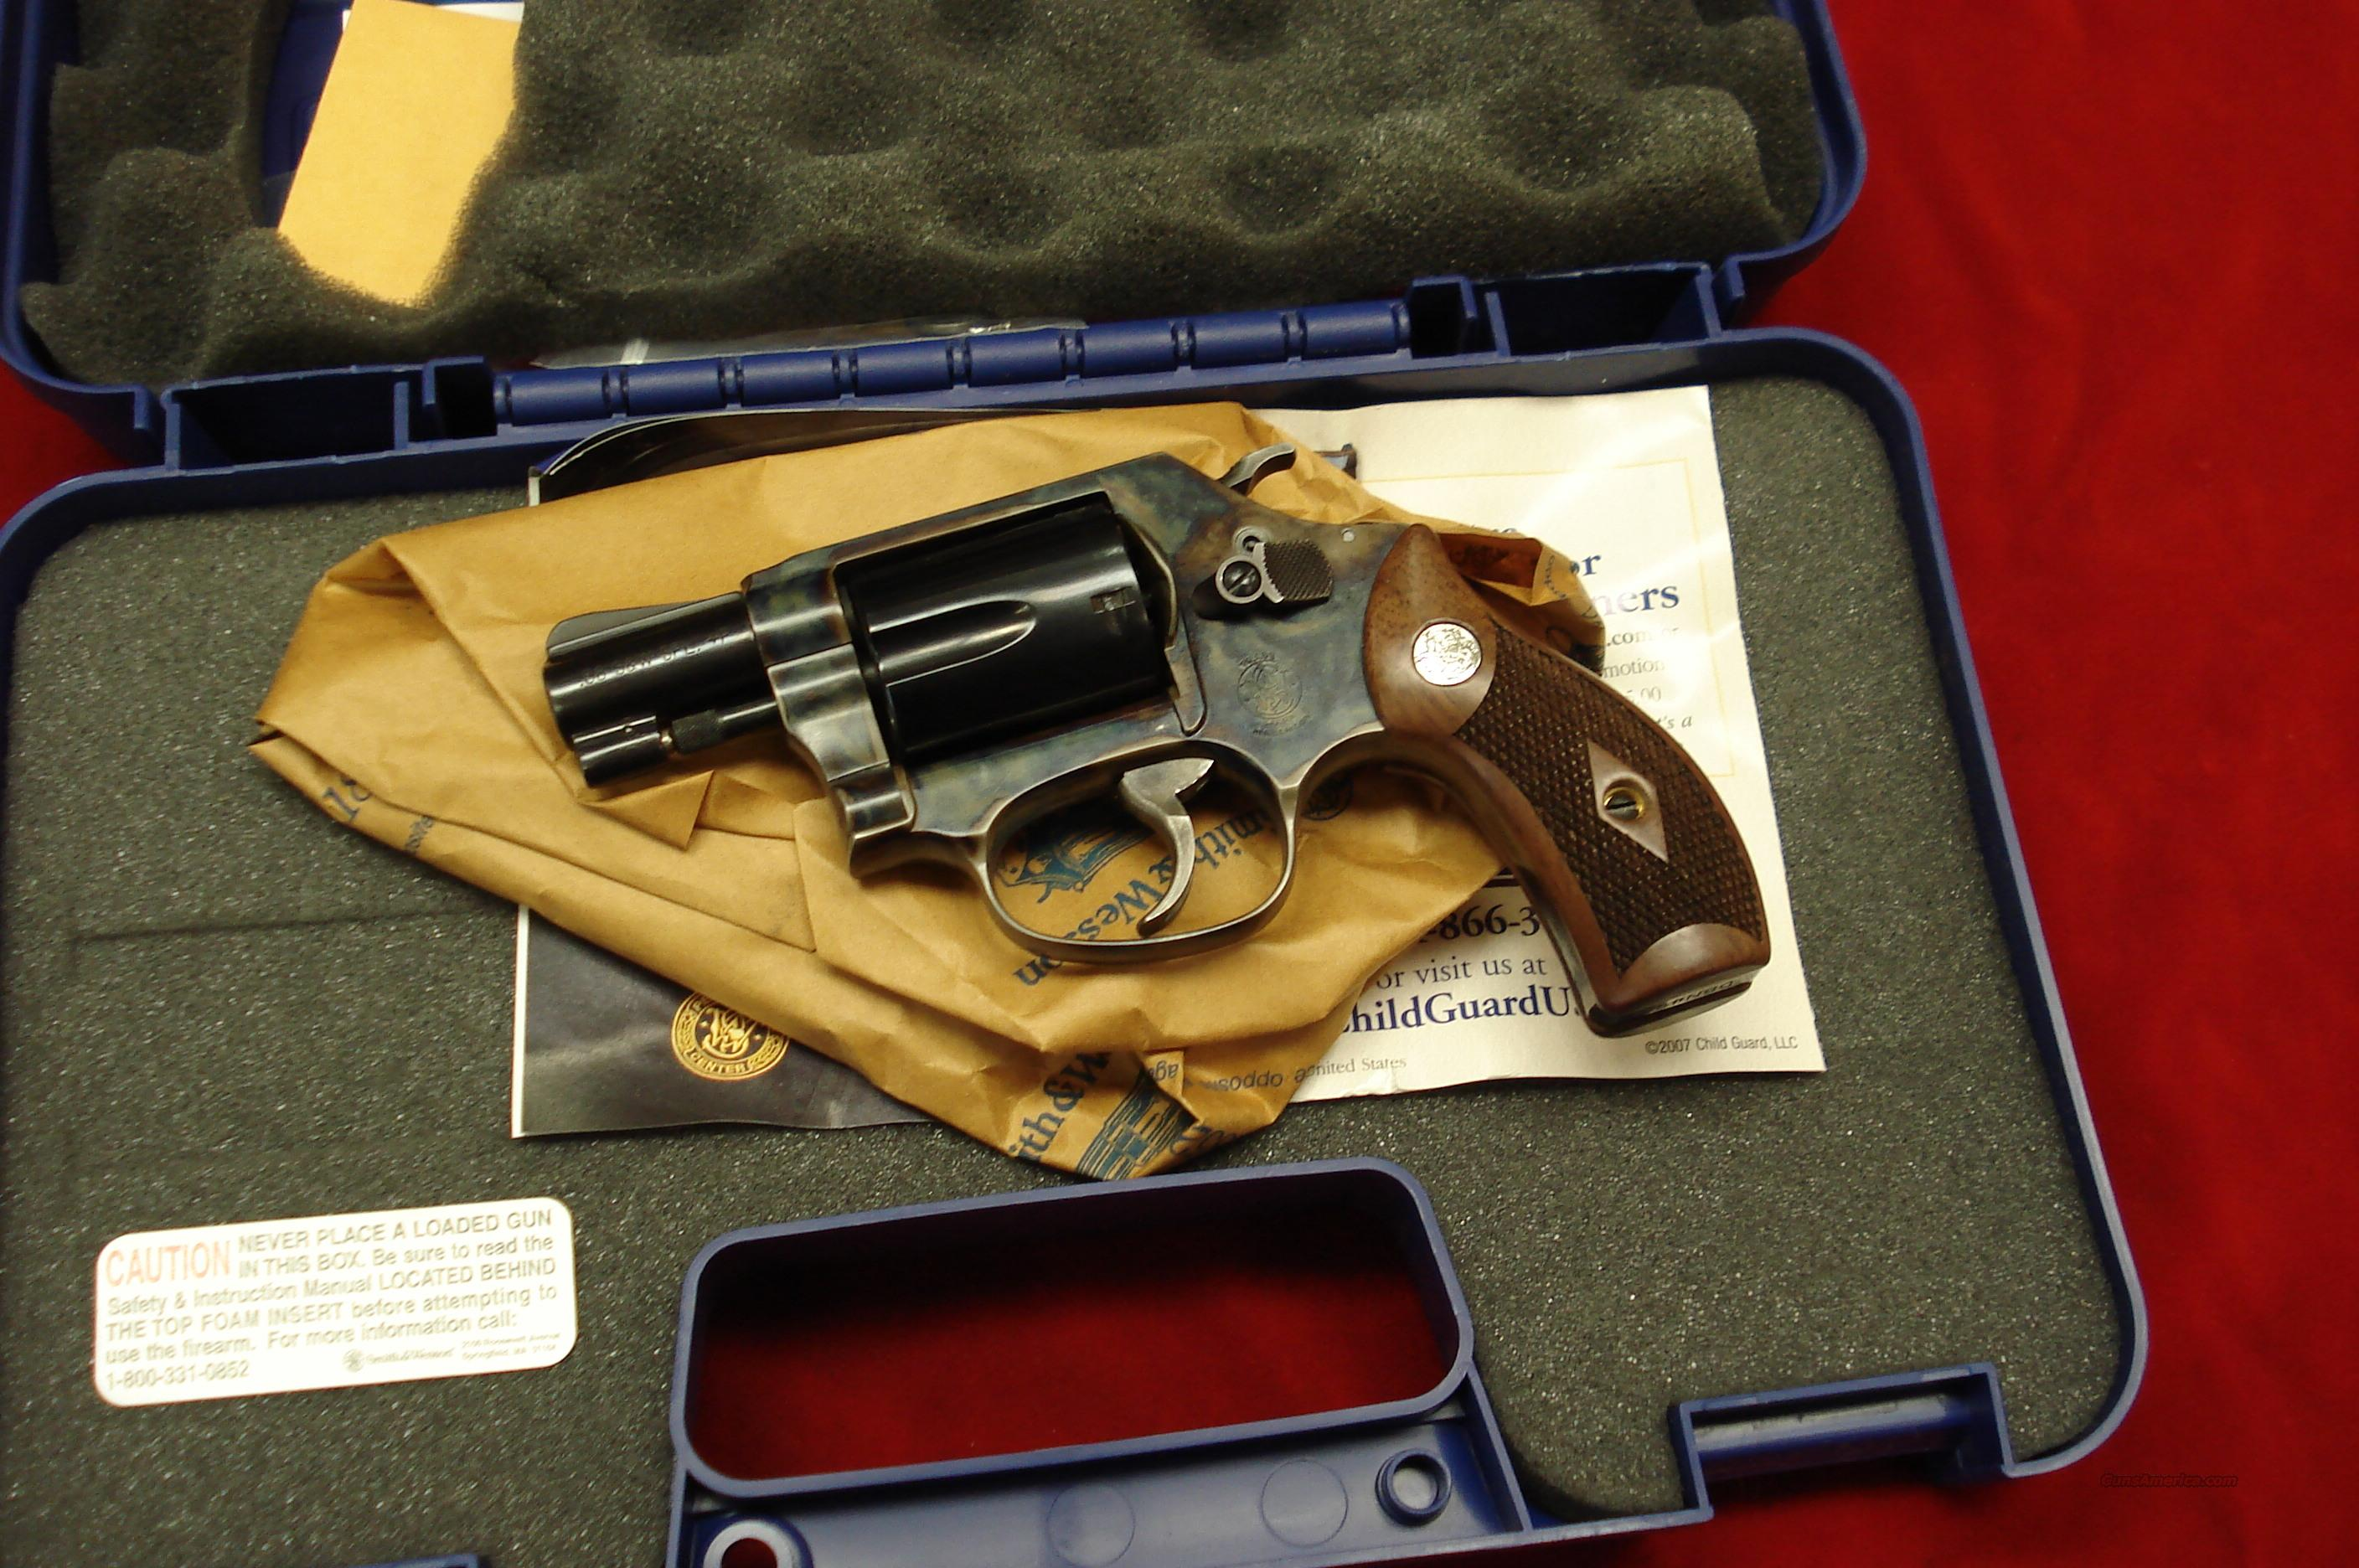 SMITH AND WESSON MODEL 36 CLASSIC 38SPL. CASE COLOR/BLUE NEW  Guns > Pistols > Smith & Wesson Revolvers > Pocket Pistols